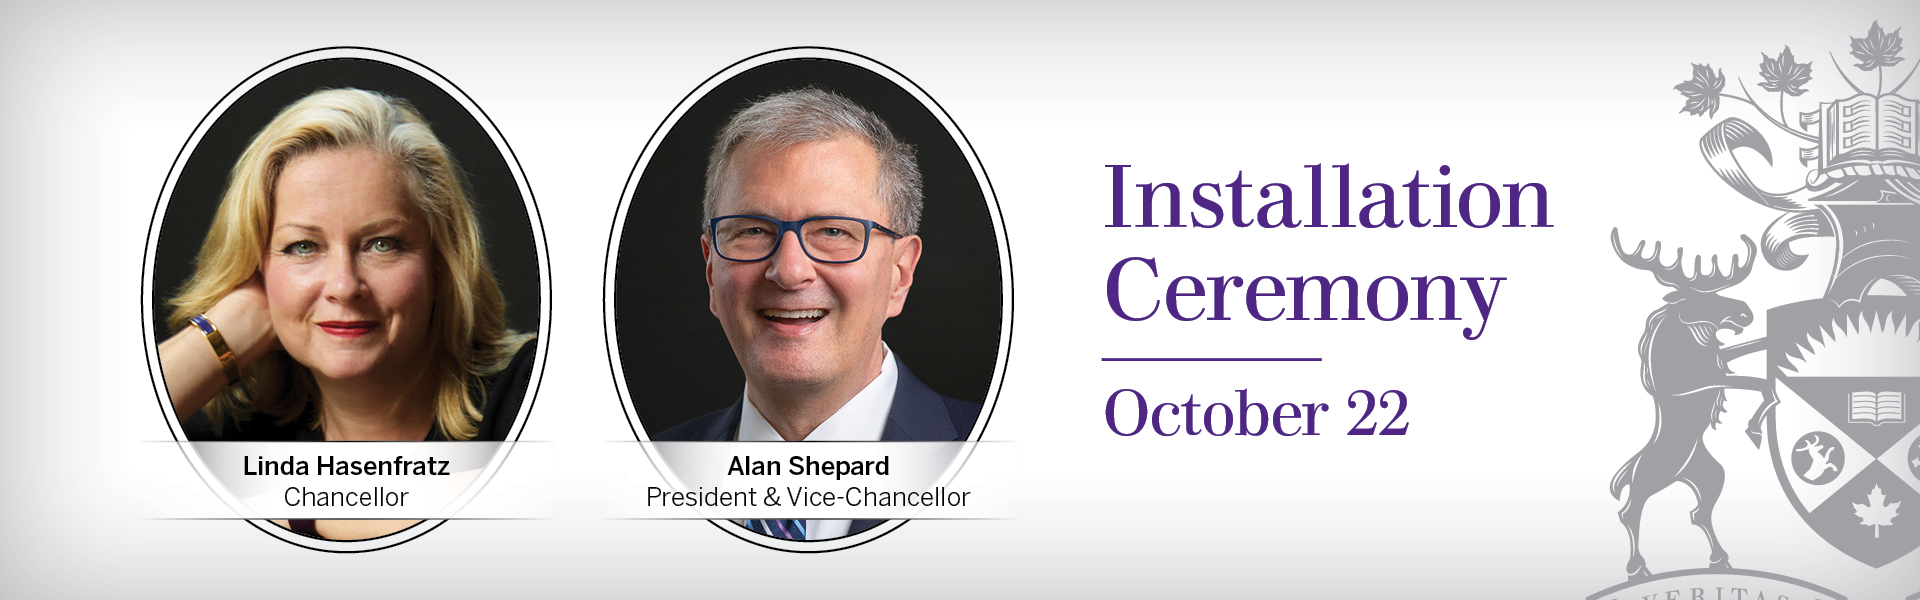 Installation of Western's Chancellor Linda Hasenfratz and President & Vice-Chancellor Alan Shepard on October 22. 4 p.m. at Alumni Hall